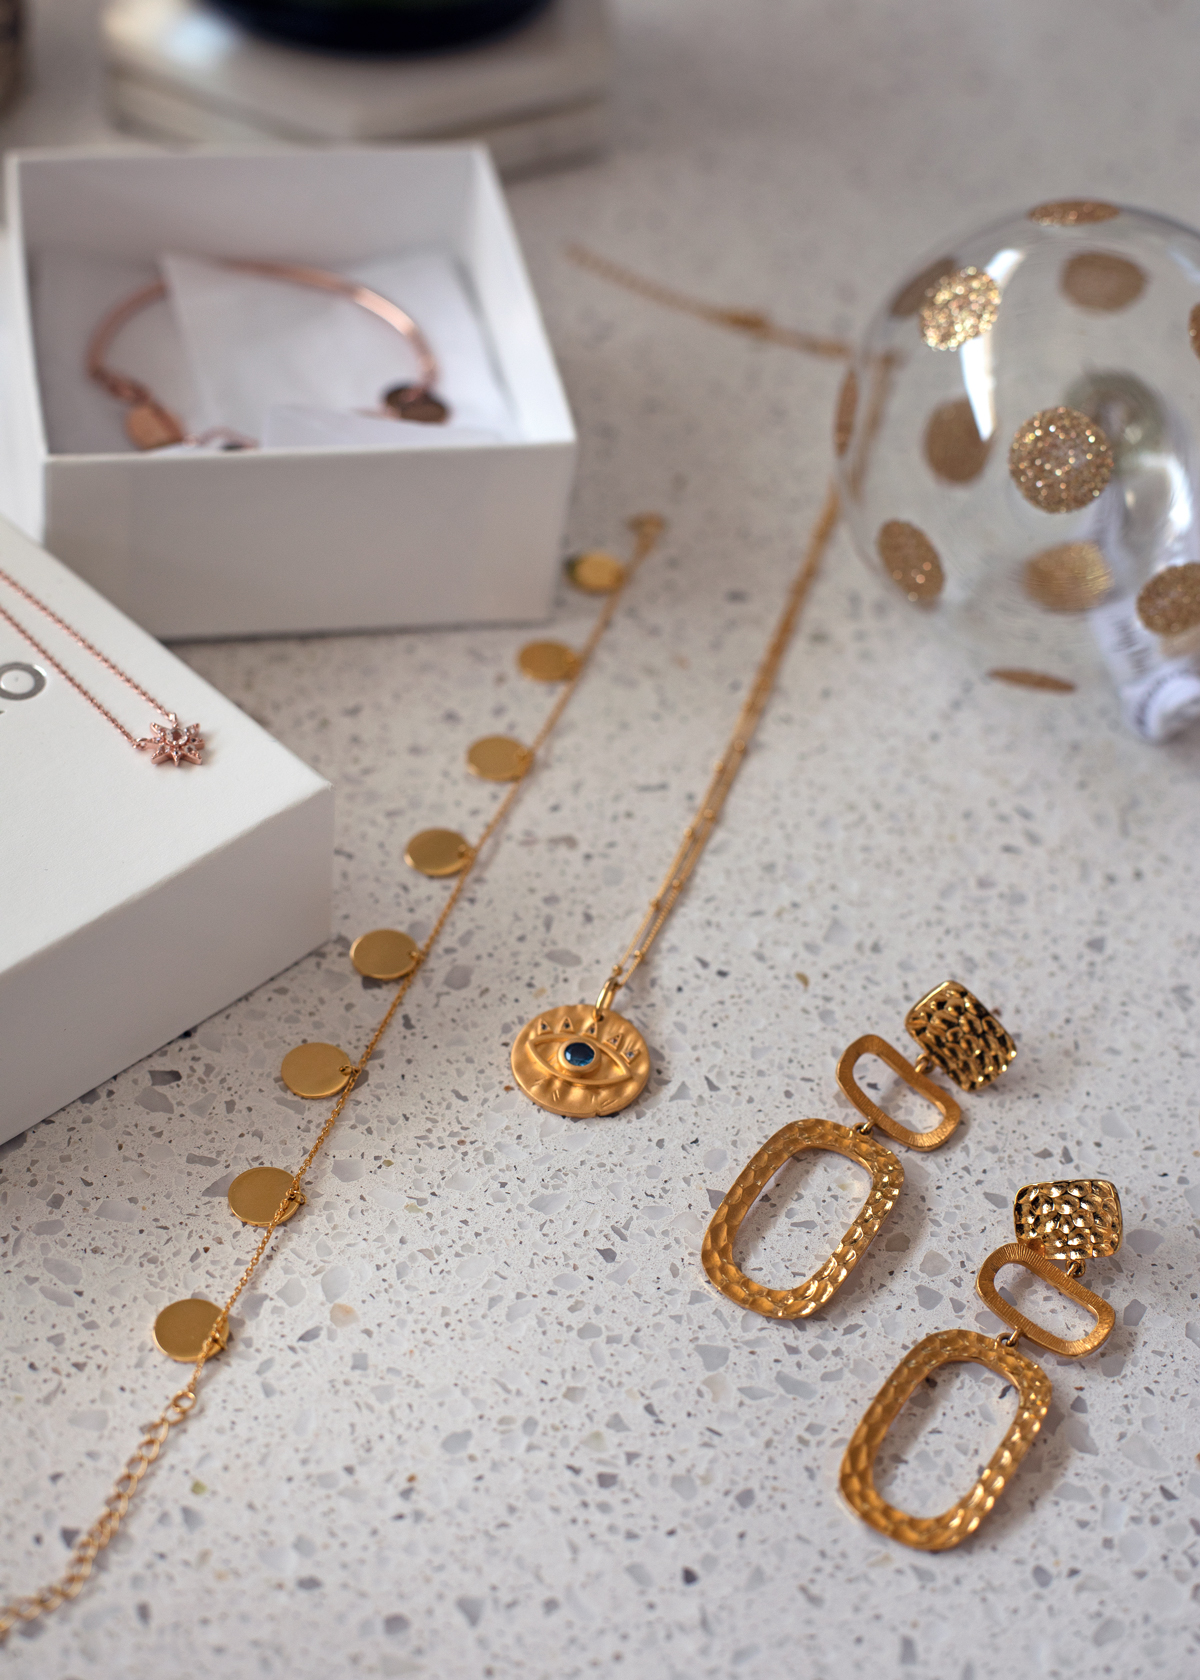 Bianko jewellery Perth based Christmas Gift guide 2018 by Inspiring Wit